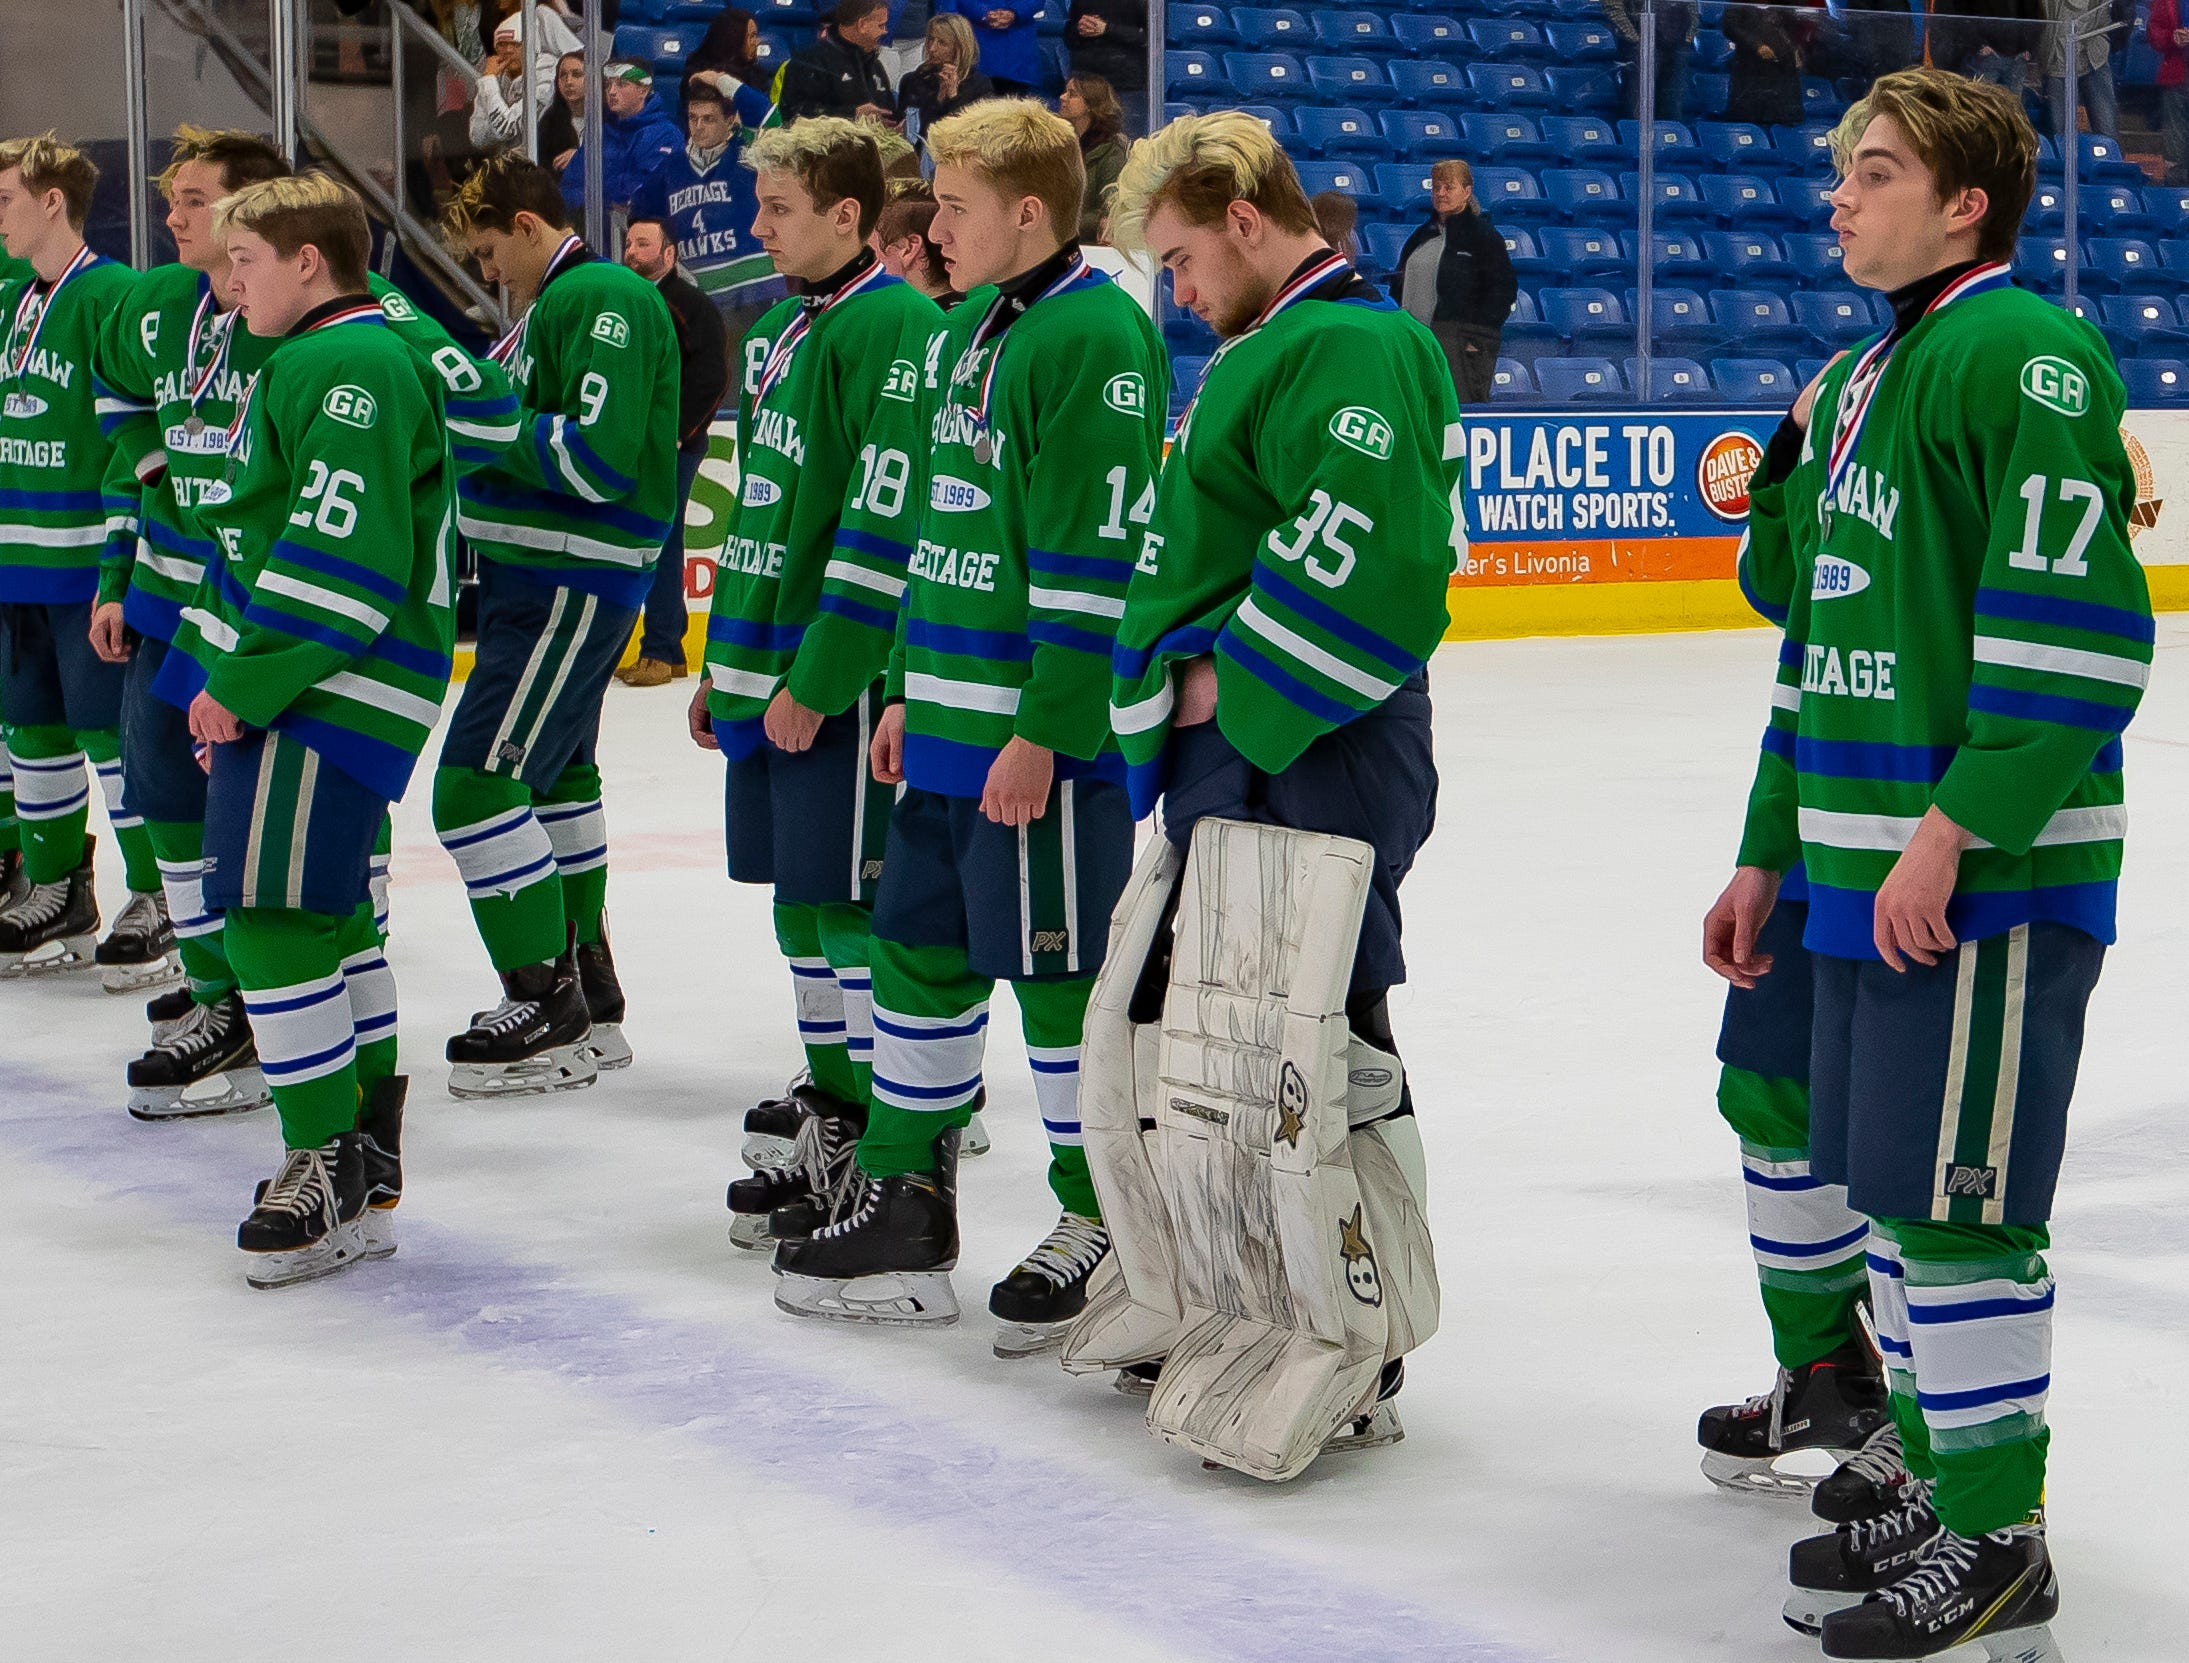 Players from Saginaw Heritage stand dejected during postgame ceremonies after losing to Detroit Catholic Central 3-1 during the MHSAA Division 1 Finals.